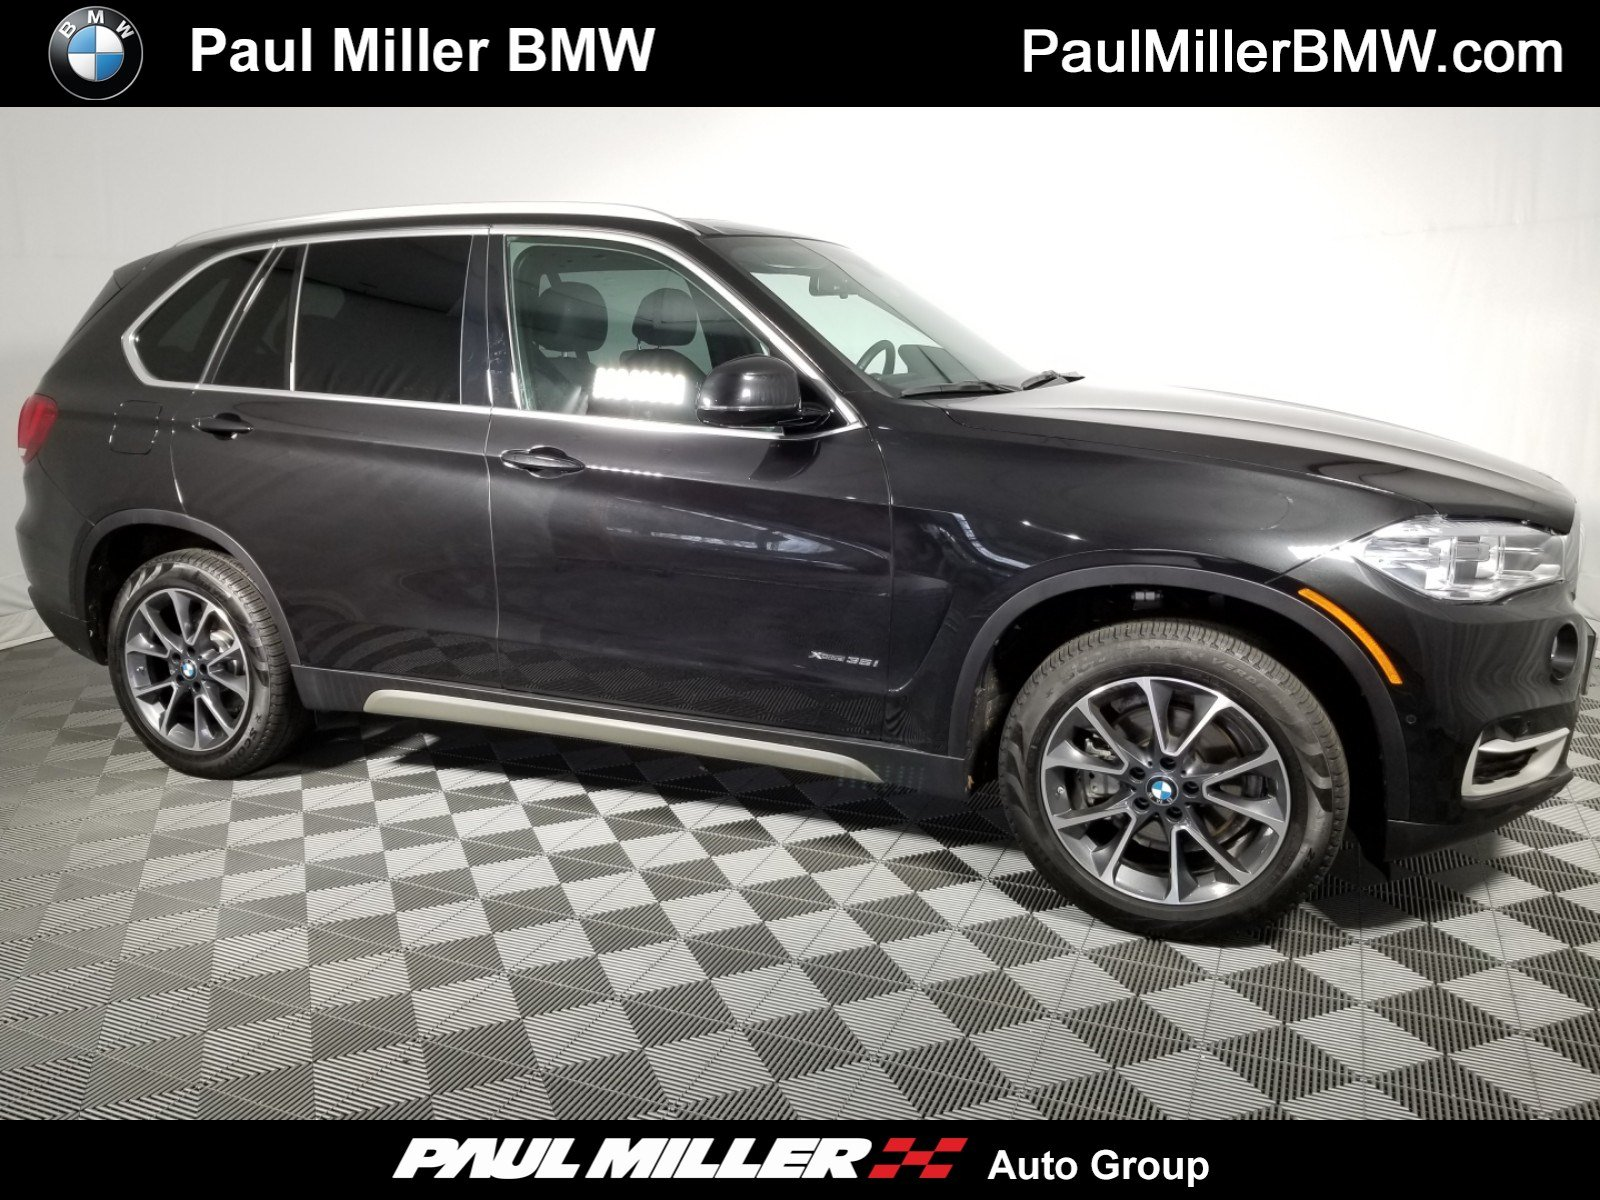 Pre Owned 2018 BMW X5 xDrive35i With Navigation & AWD